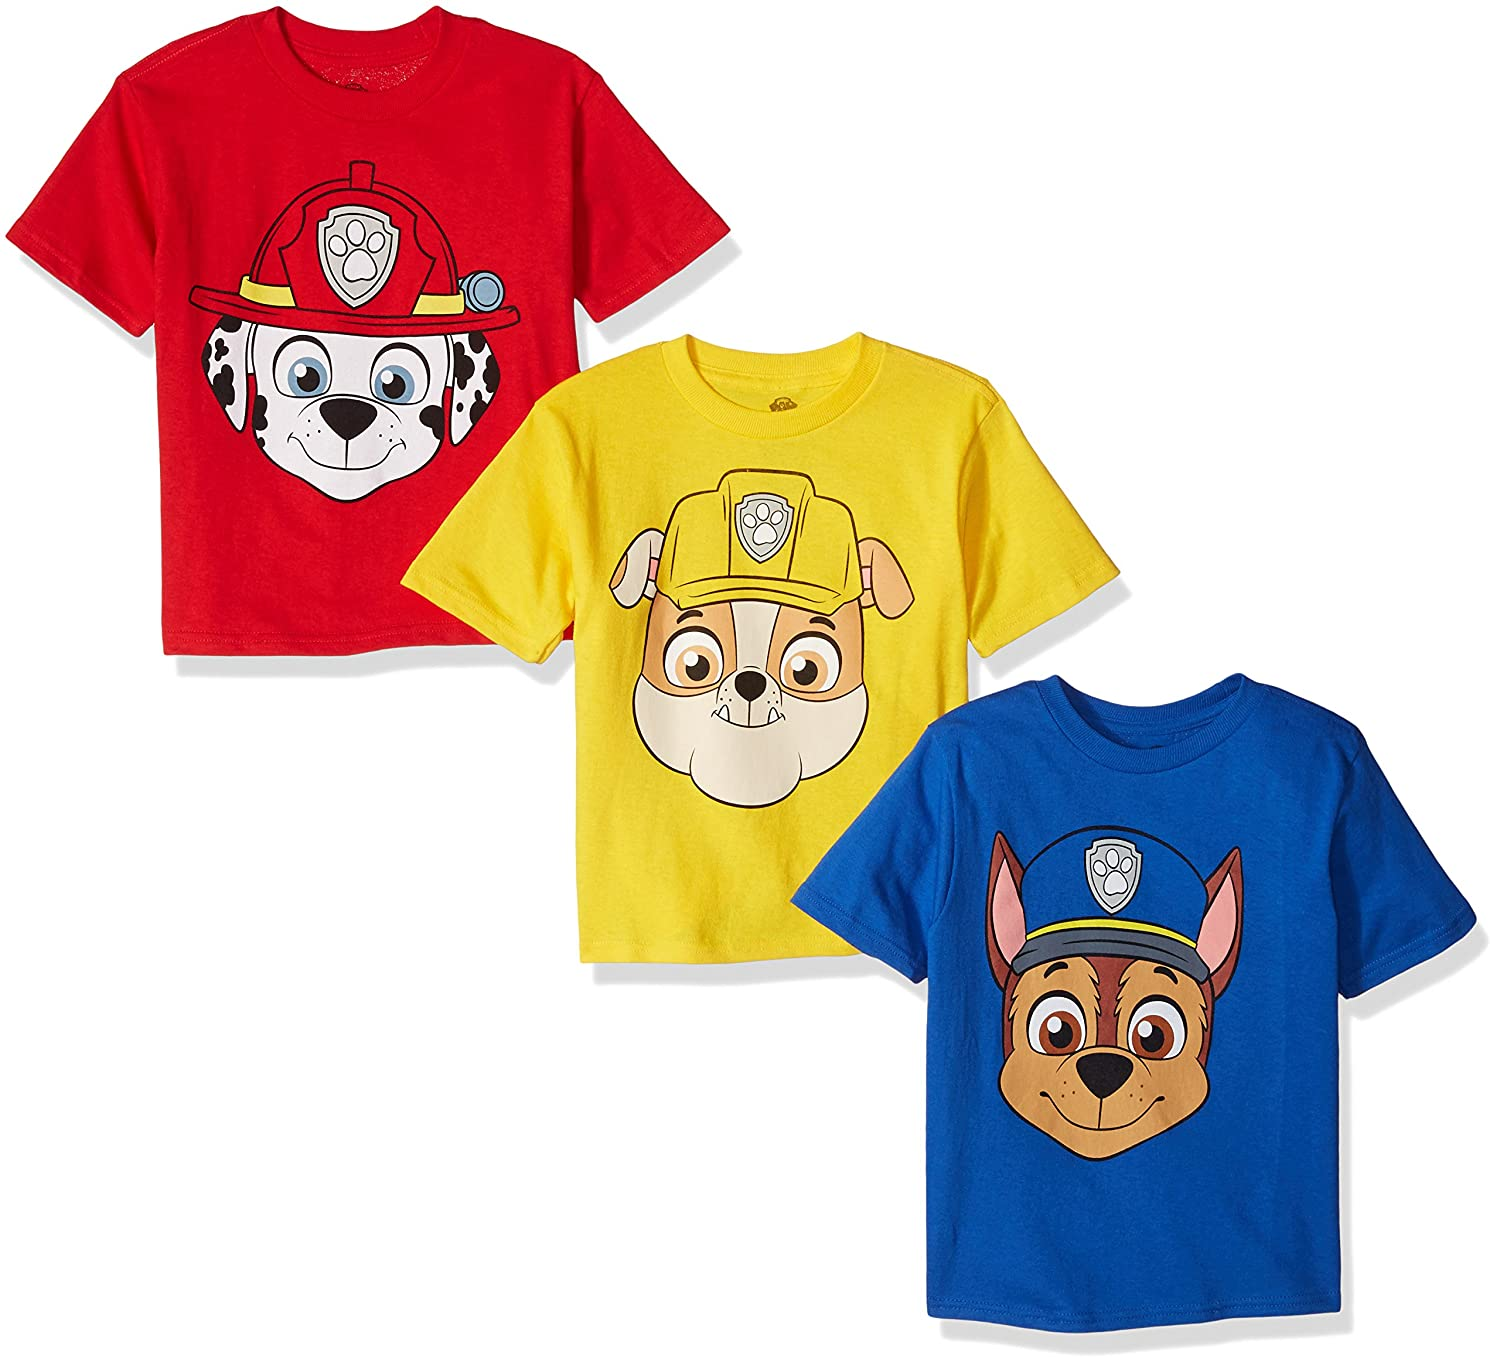 239288b85 Amazon.com: Paw Patrol Boys' Toddler Pack of Three T-Shirts,  Royal/Red/Yellow, 4T: Clothing